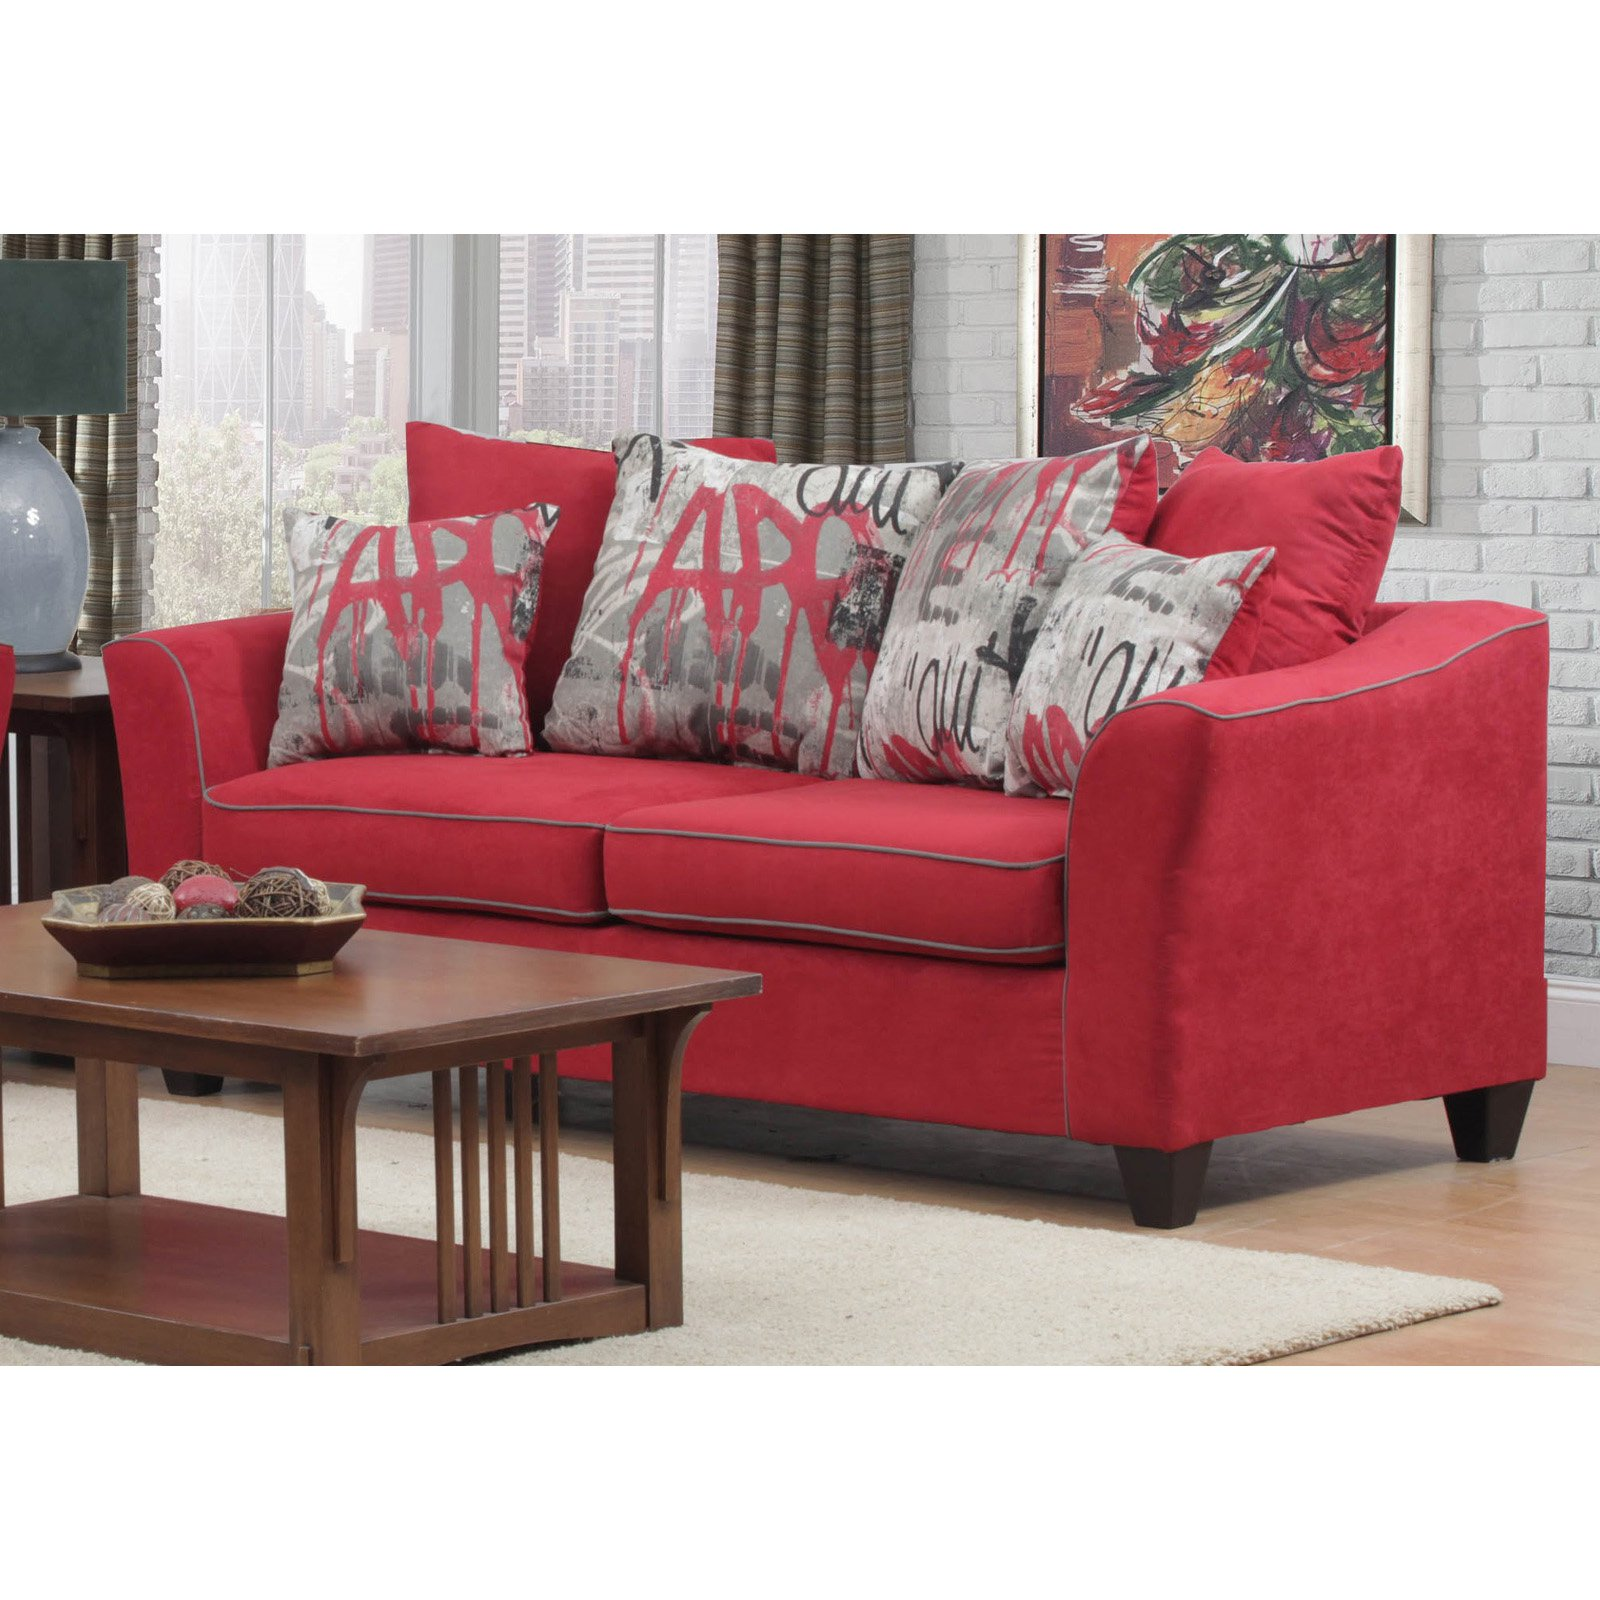 Chelsea Home Brier Sofa with Toss Pillows